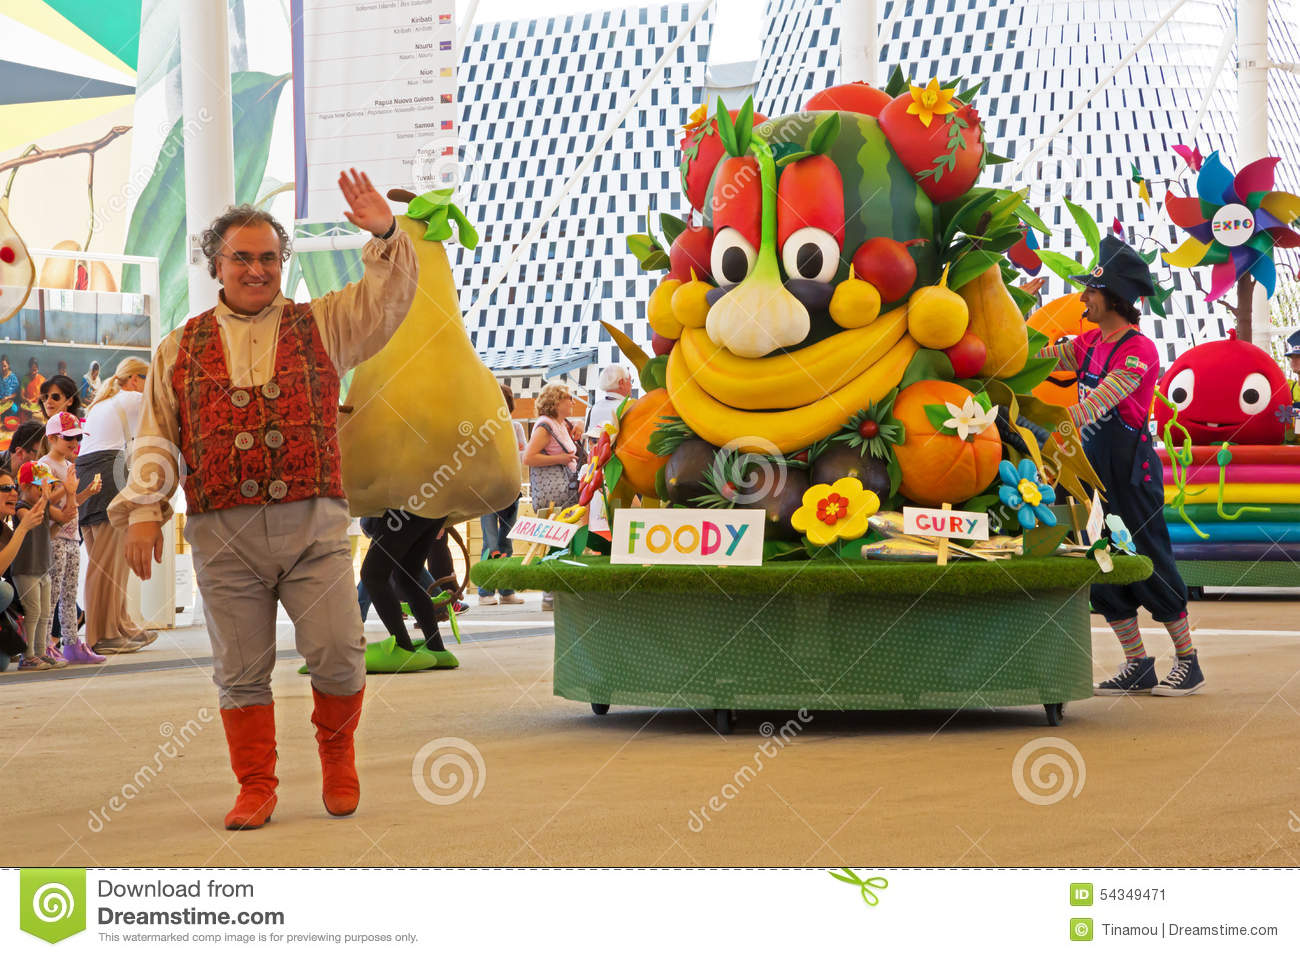 Voodoo amulet royalty free stock photos image 2718528 - Foody Mascotte Of Expo 2015 On Parade Stock Image